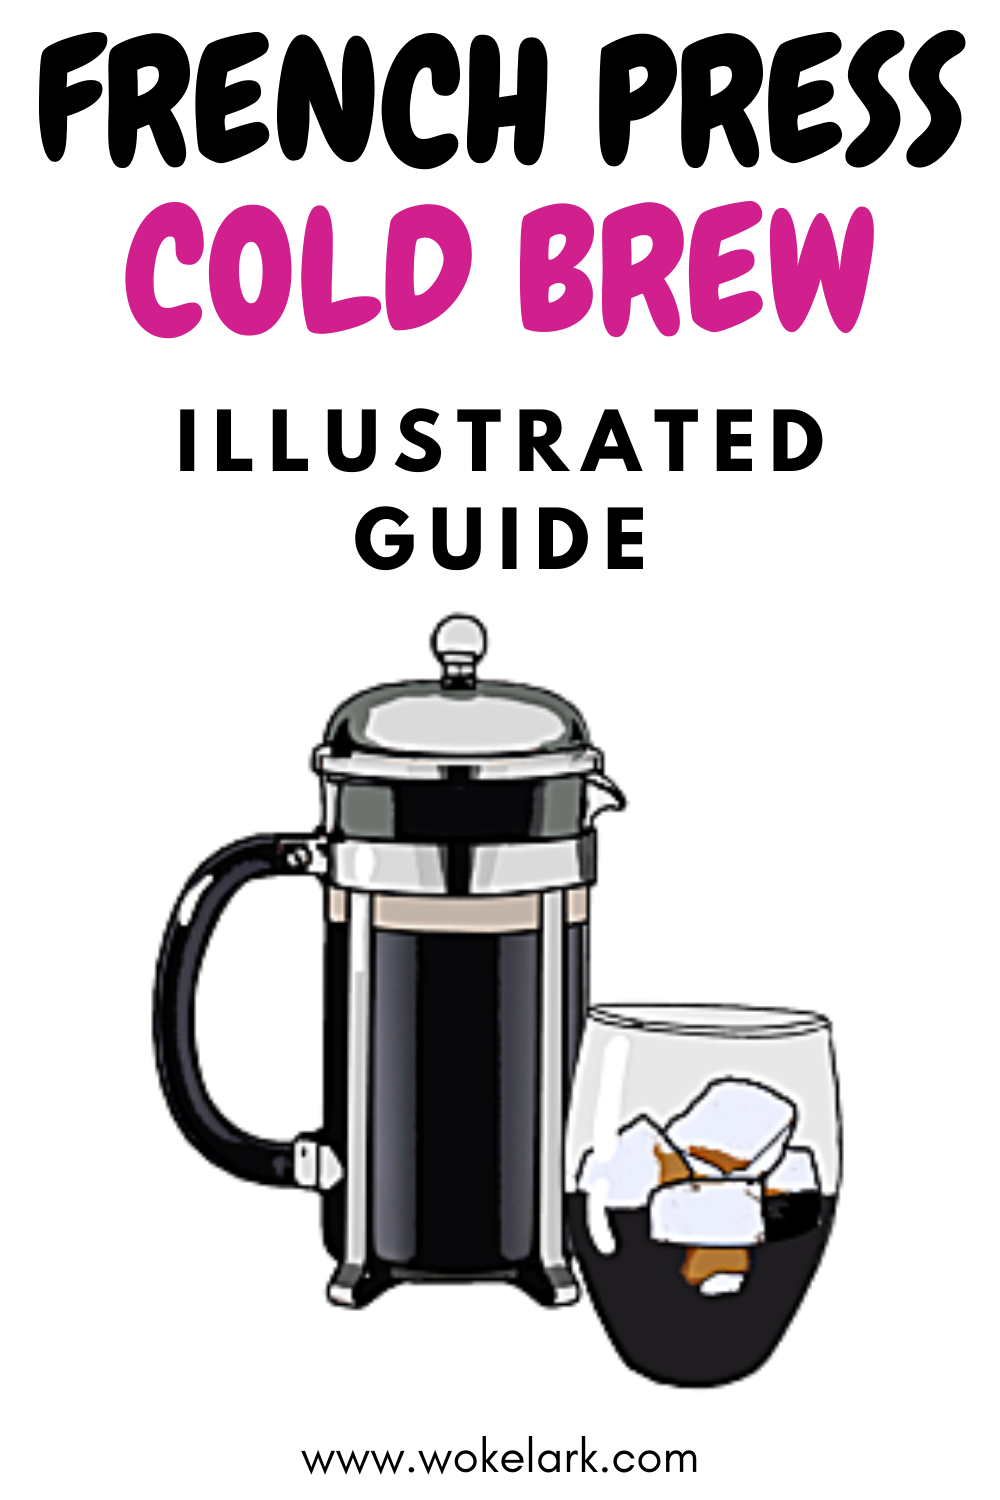 Cold Brew In A French Press Best How To Guide In 2020 Cold Brew Coffee French Press French Press Cold Brew Making Cold Brew Coffee